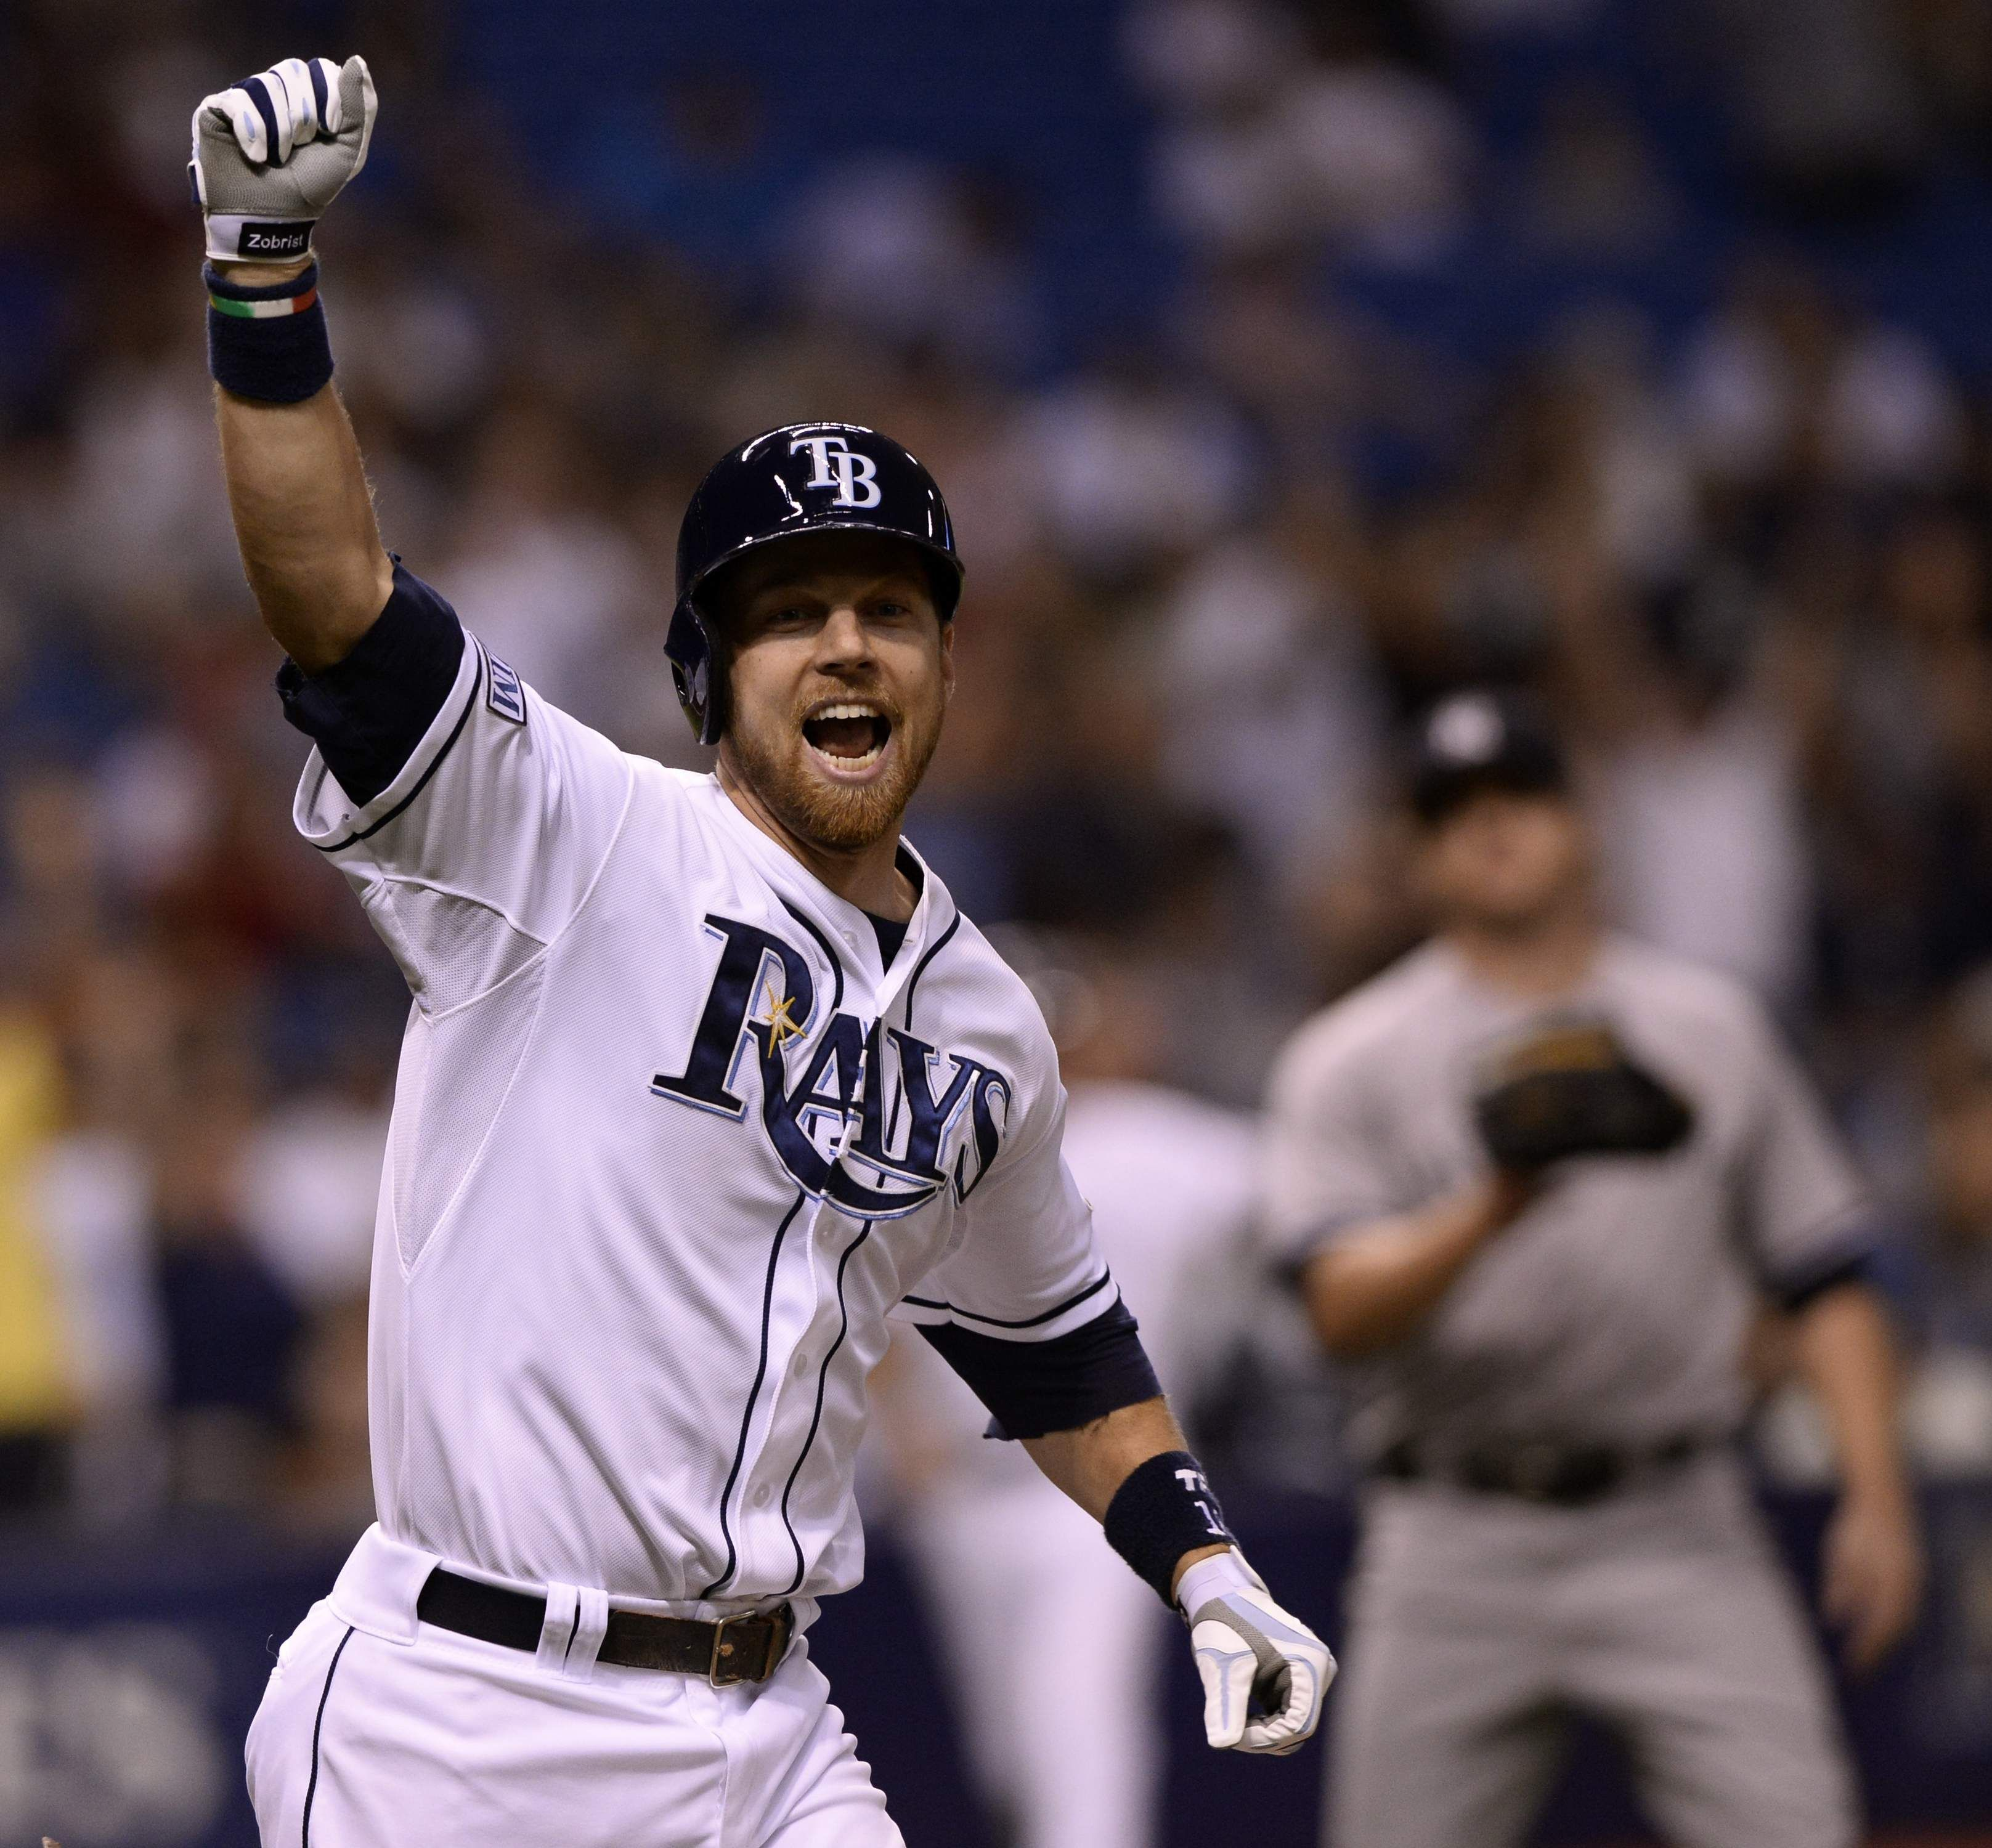 Rays Final Homestand Starts With Walkoff Win Over The Yankees Ben Zobrist Gets A Single In The Bottom Of The 9th To Beat Yankee Yankees Tampa Bay Rays Finals